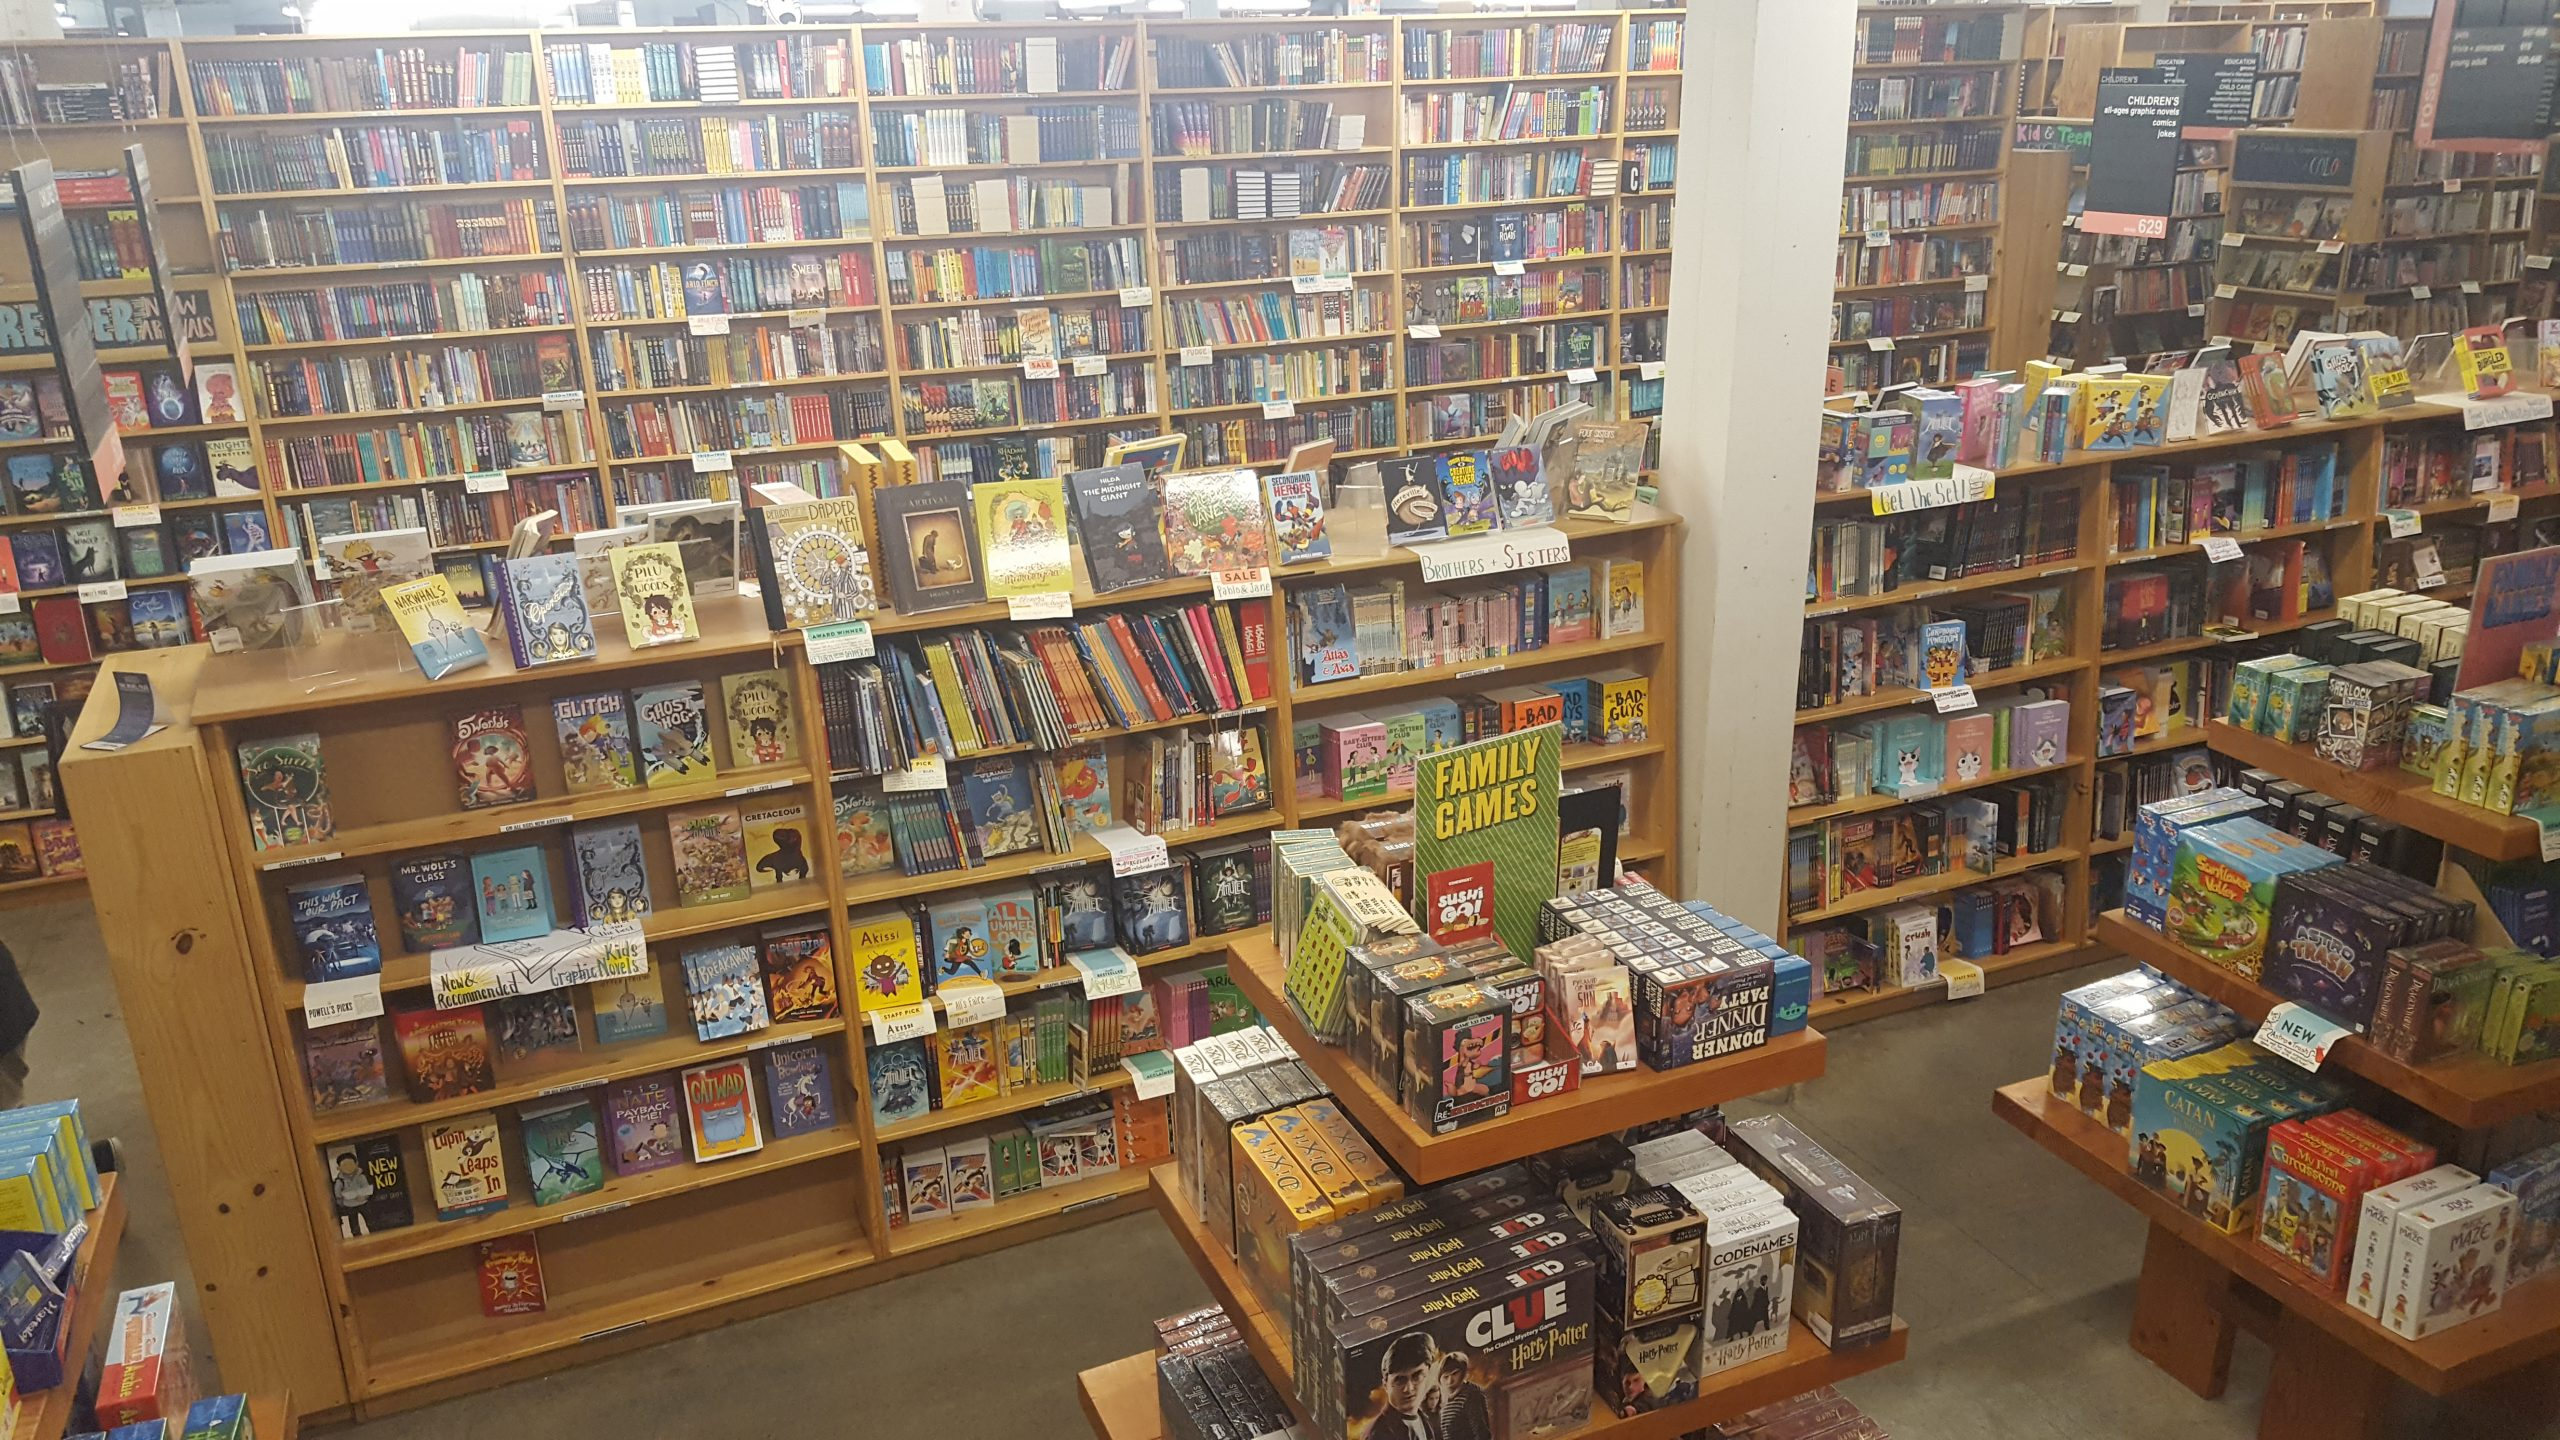 Powell's City of books. Except it's a picture of the board game section